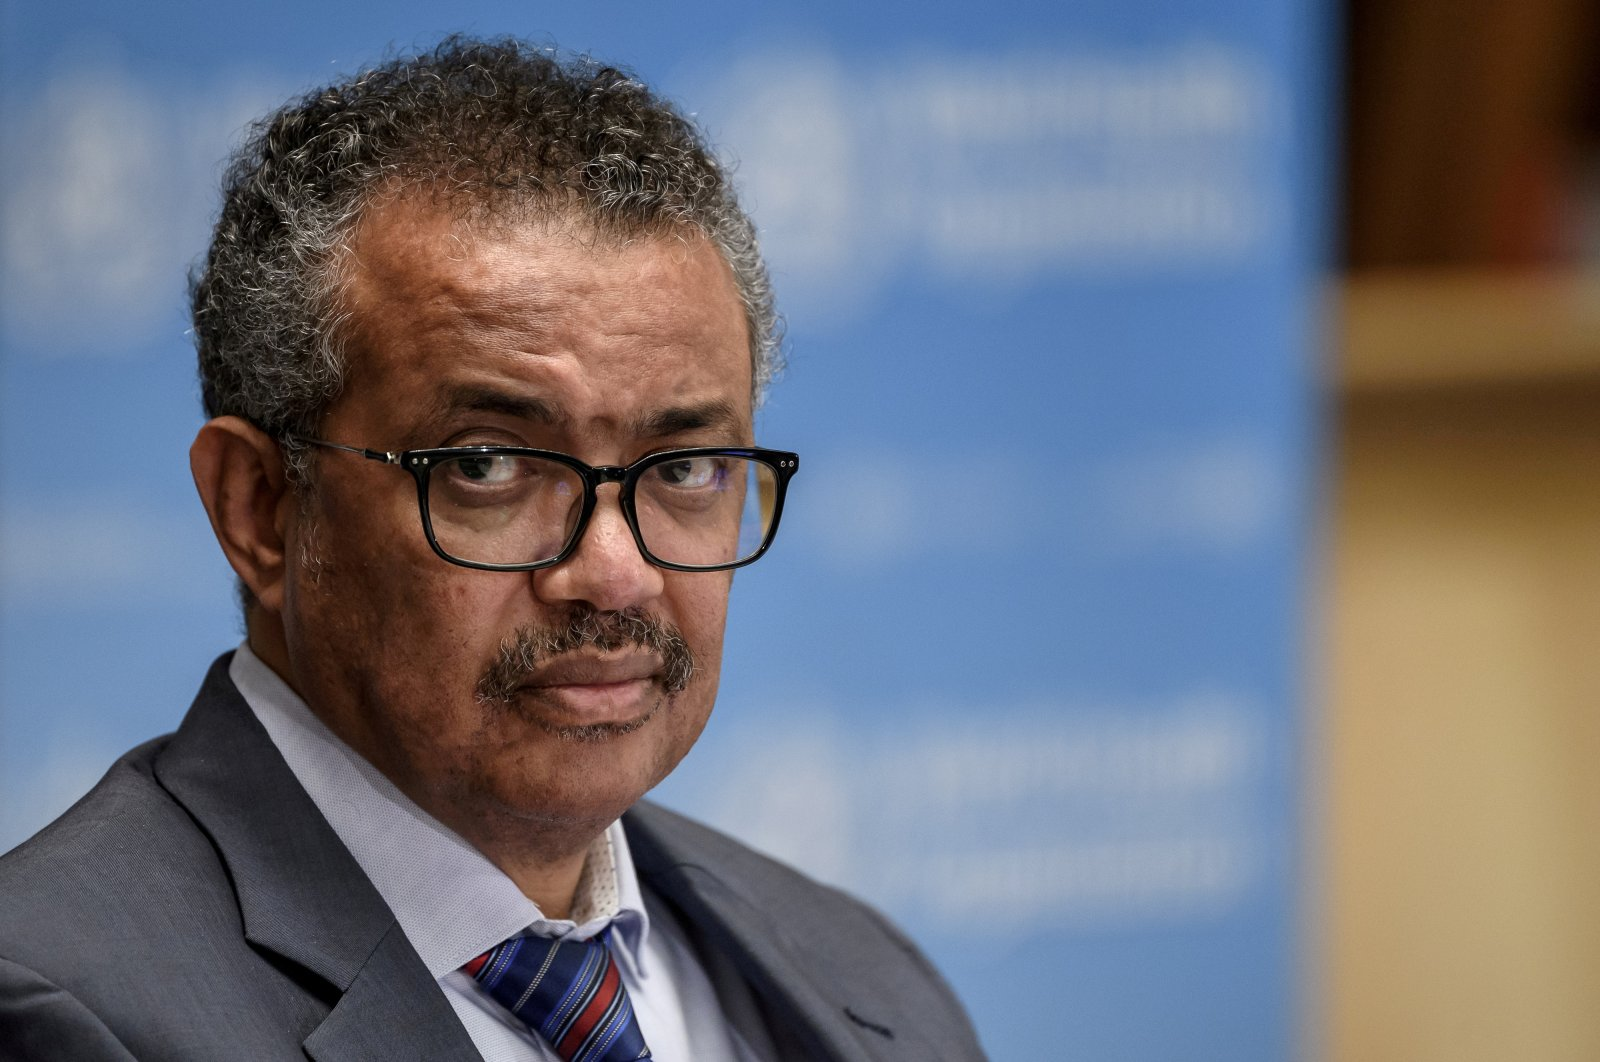 World Health Organization (WHO) Director-General Tedros Adhanom Ghebreyesus attends a news conference at the WHO headquarters in Geneva Switzerland July 3, 2020. (Reuters Photo)